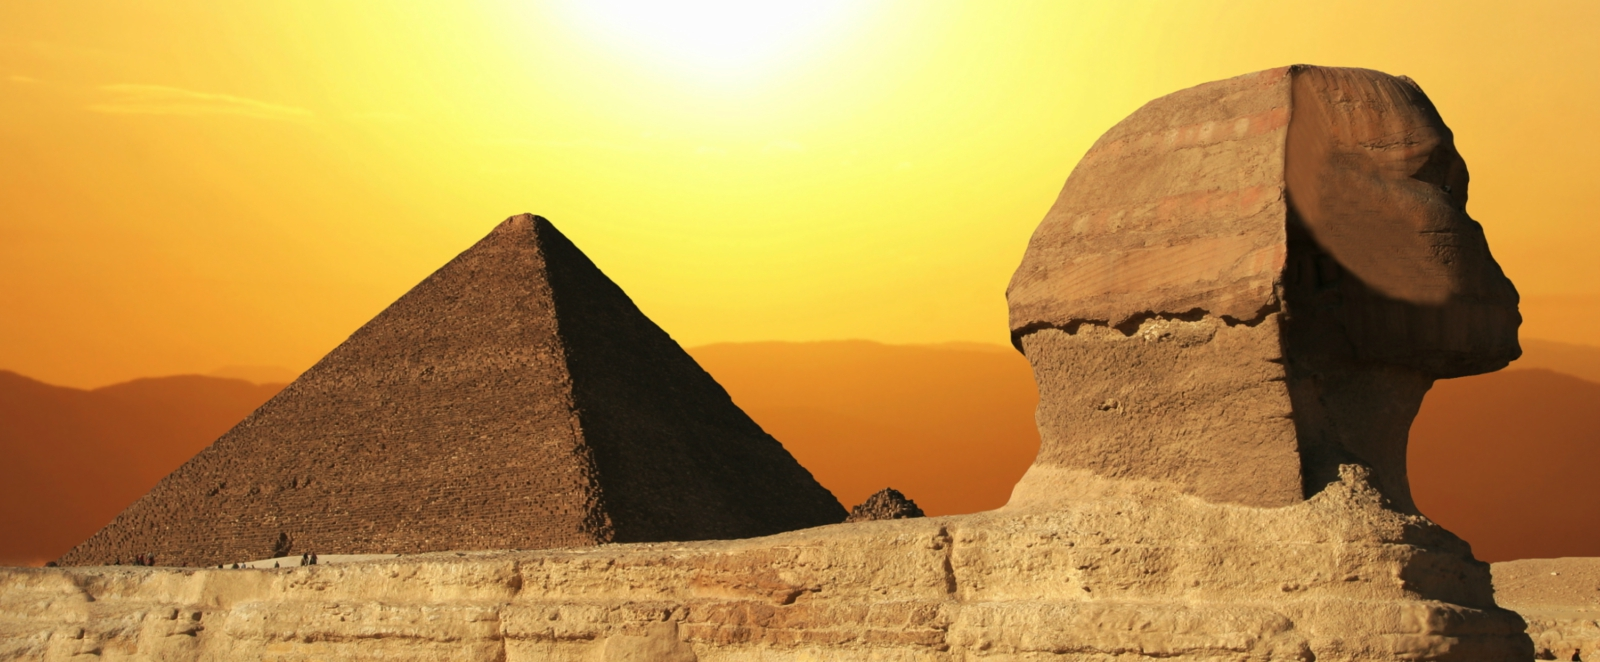 2026-awakening-blog-sphinx-egypt.jpg